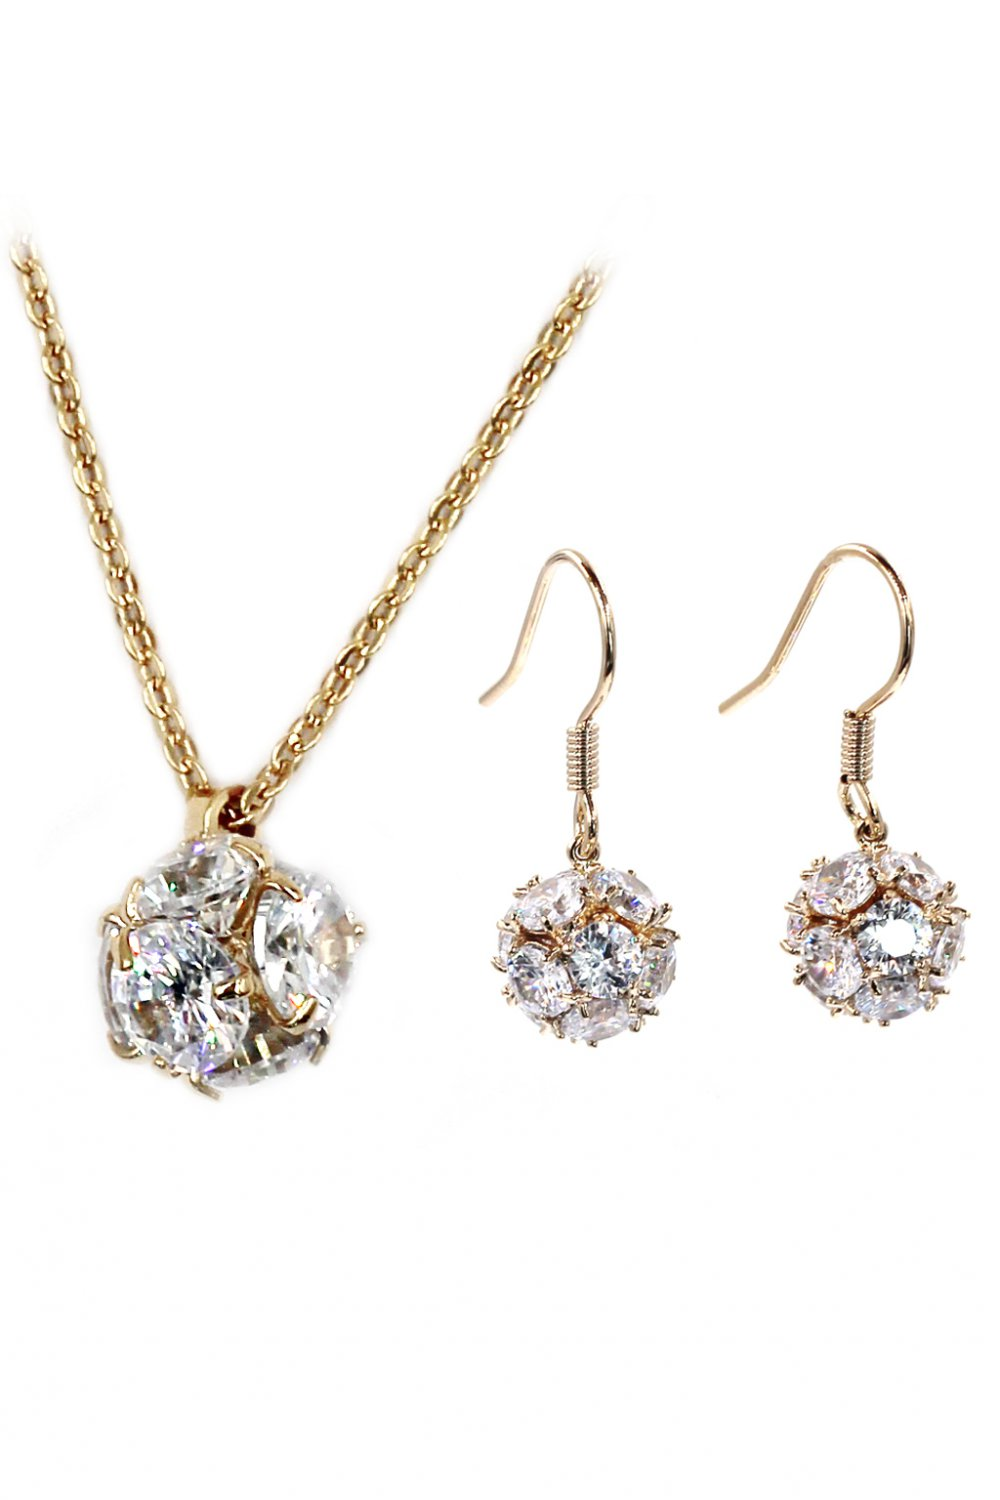 Mini crystal ball necklace earrings gold set